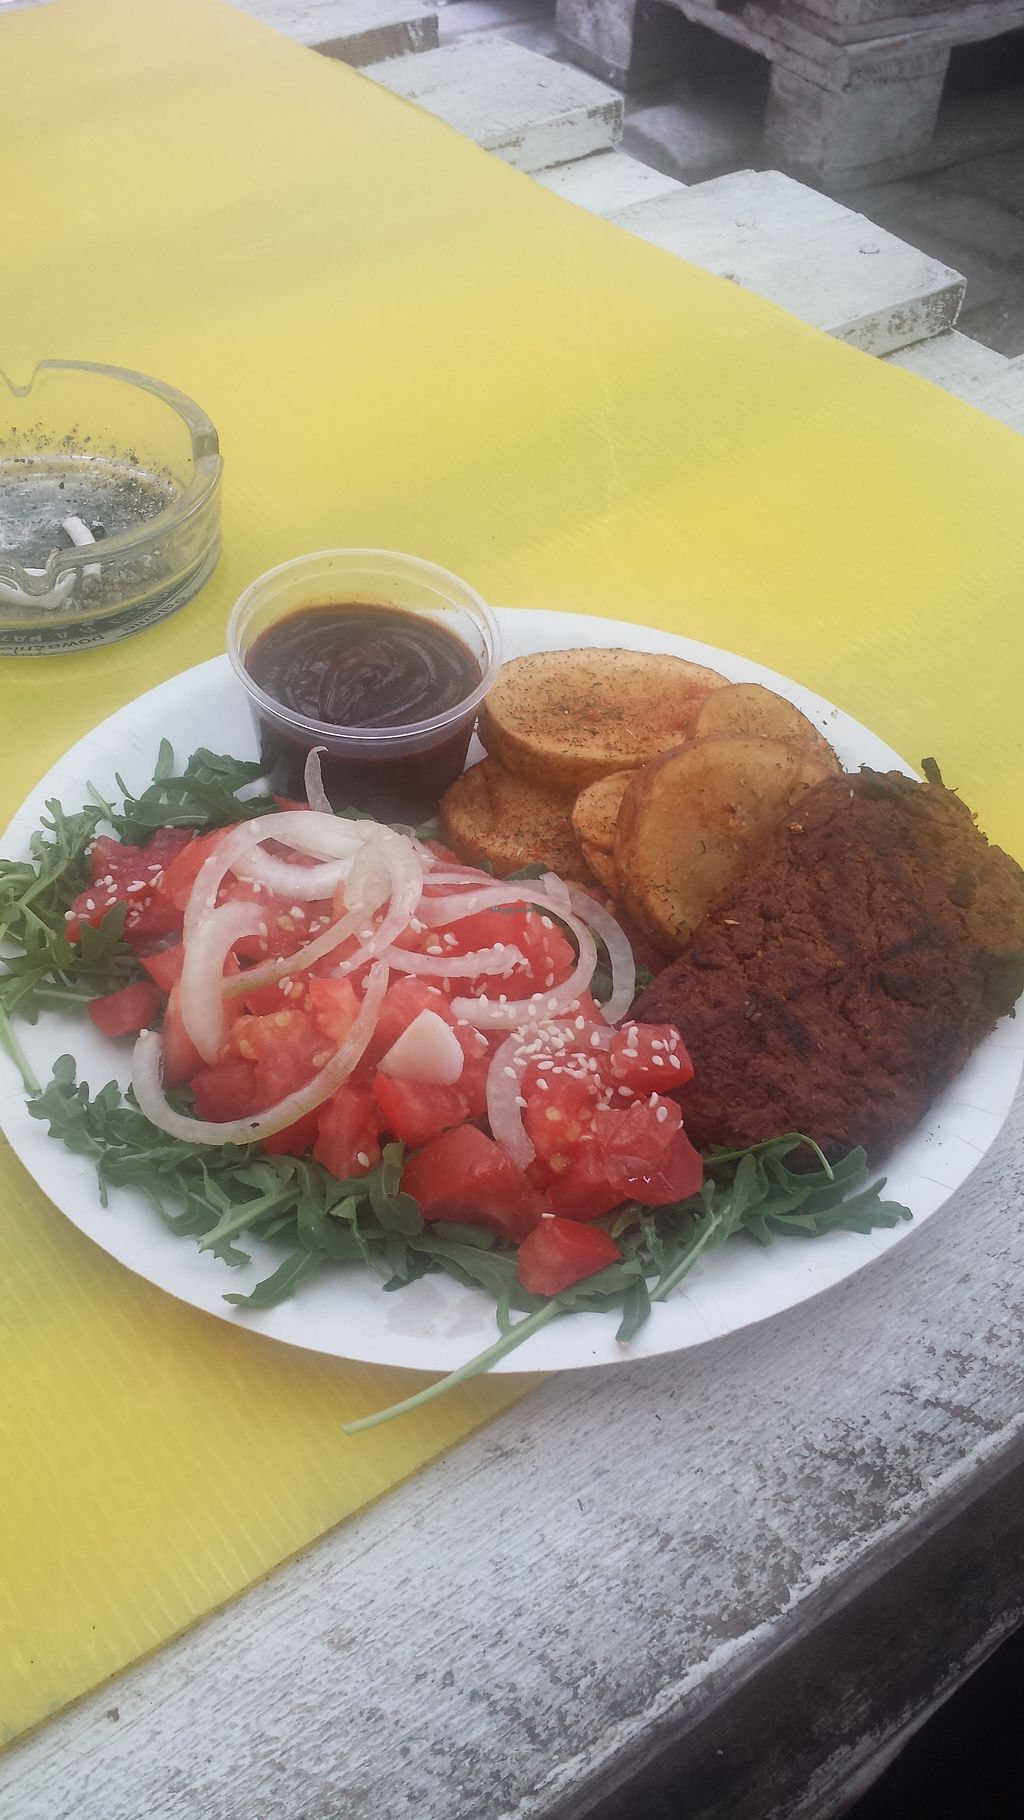 """Photo of CLOSED: Chatpata Vege Grill - Food Stand  by <a href=""""/members/profile/ajel"""">ajel</a> <br/>Vegan schnitzel, grilled potatoes, tomatoes <br/> November 20, 2017  - <a href='/contact/abuse/image/94483/327519'>Report</a>"""